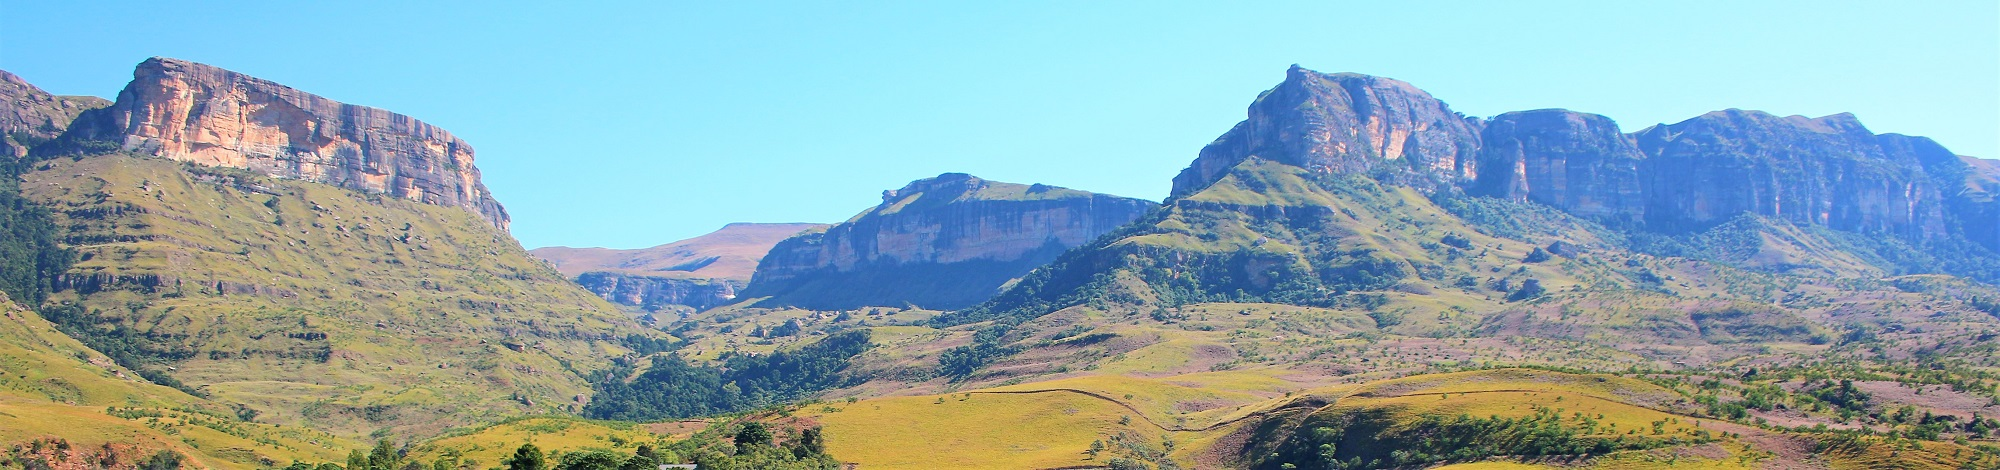 Saddling Up In South Africa's Drakensberg Foothills